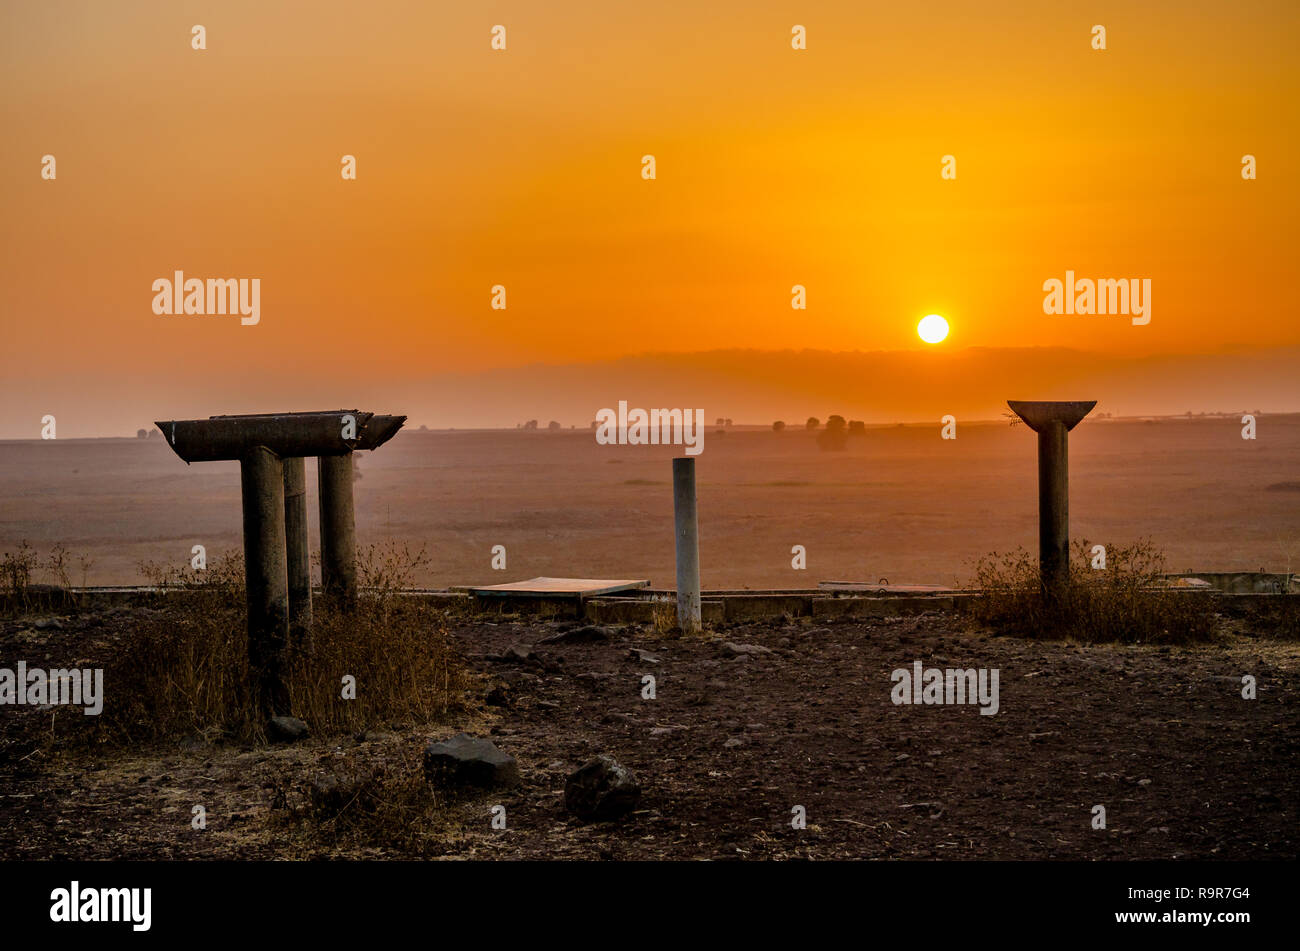 Periscopes of the Tel Saki fortifications from the Yom Kippur War in Israel at sunset - Stock Image